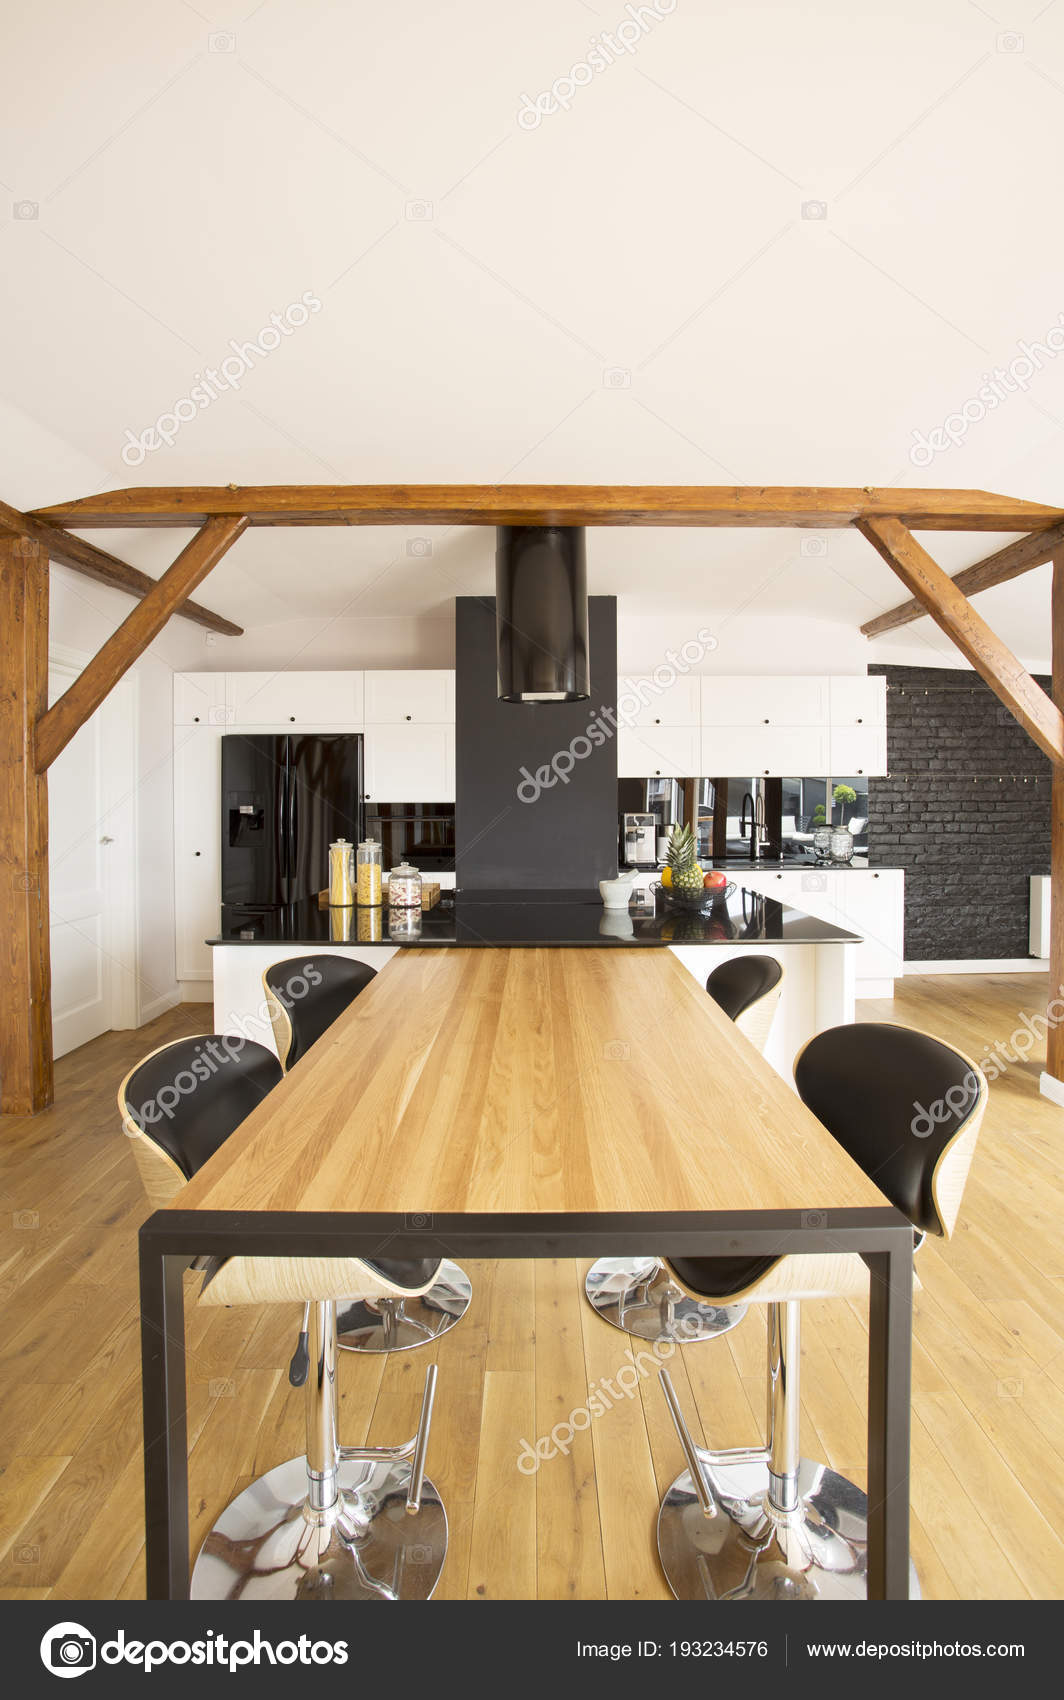 Bar Stools Wooden Table Spacious Kitchen Interior Black Countertop White Stock Photo C Photographee Eu 193234576